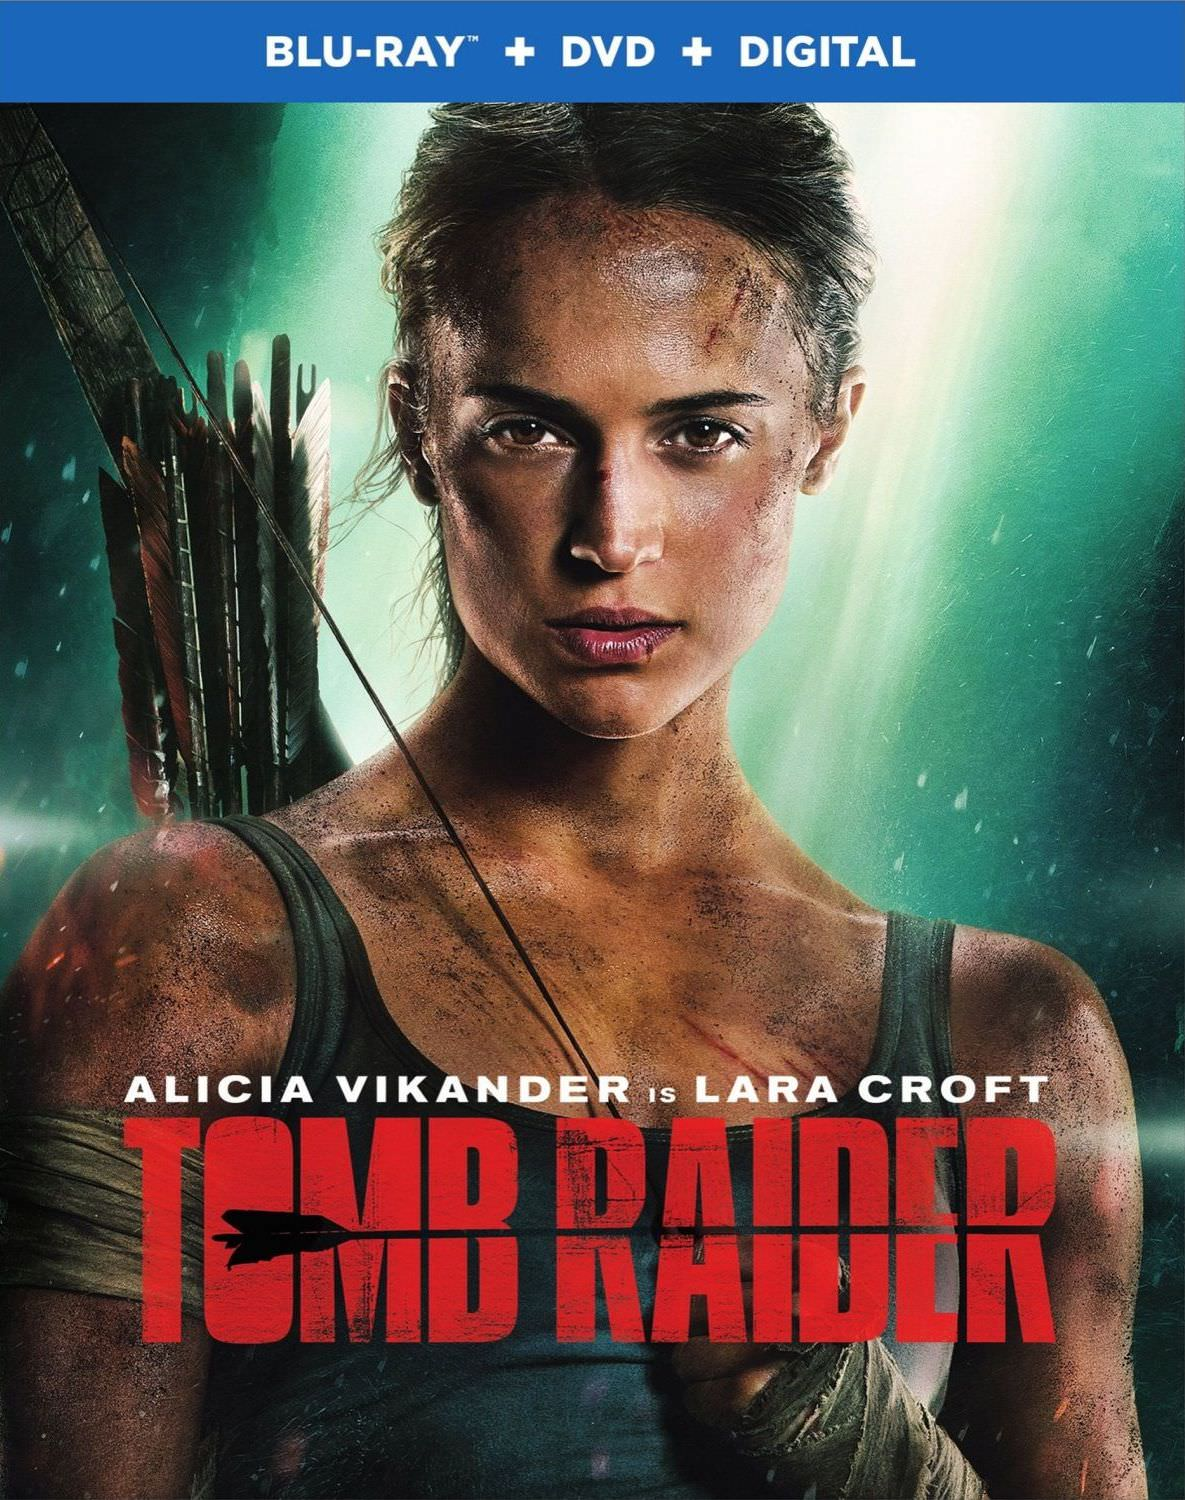 Descargar Tomb Raider BD25 BDRip 1080p LATINO VER ONLINE